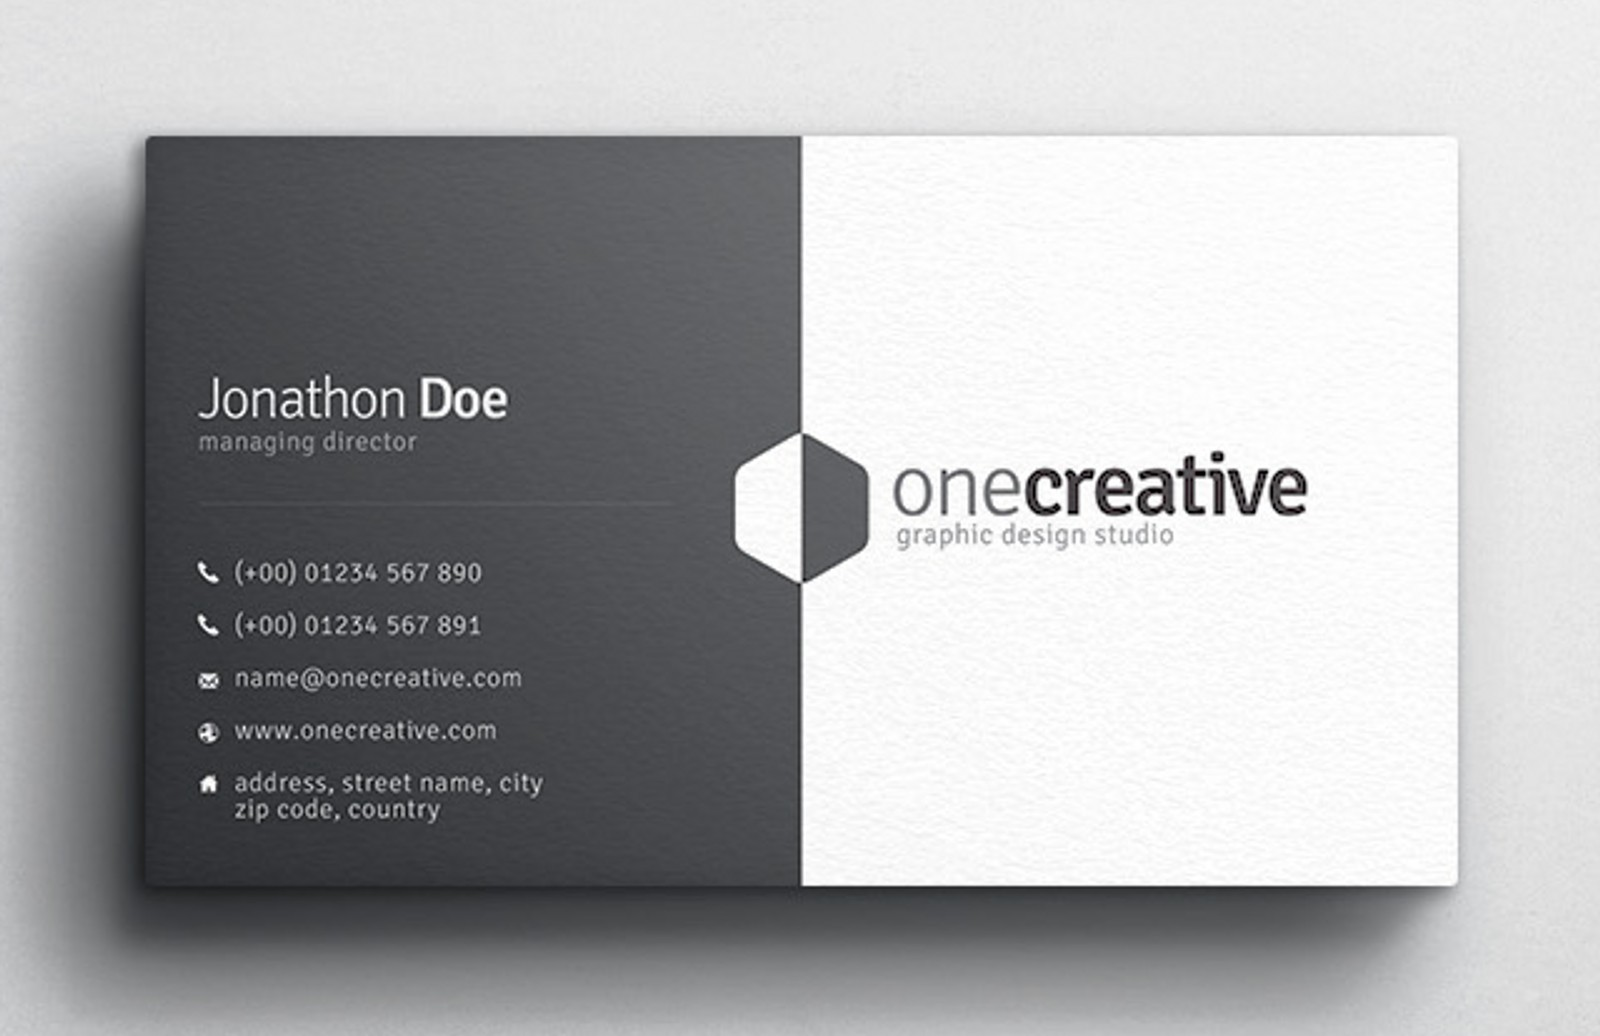 Duo business card design medialoot duo business card design wajeb Images